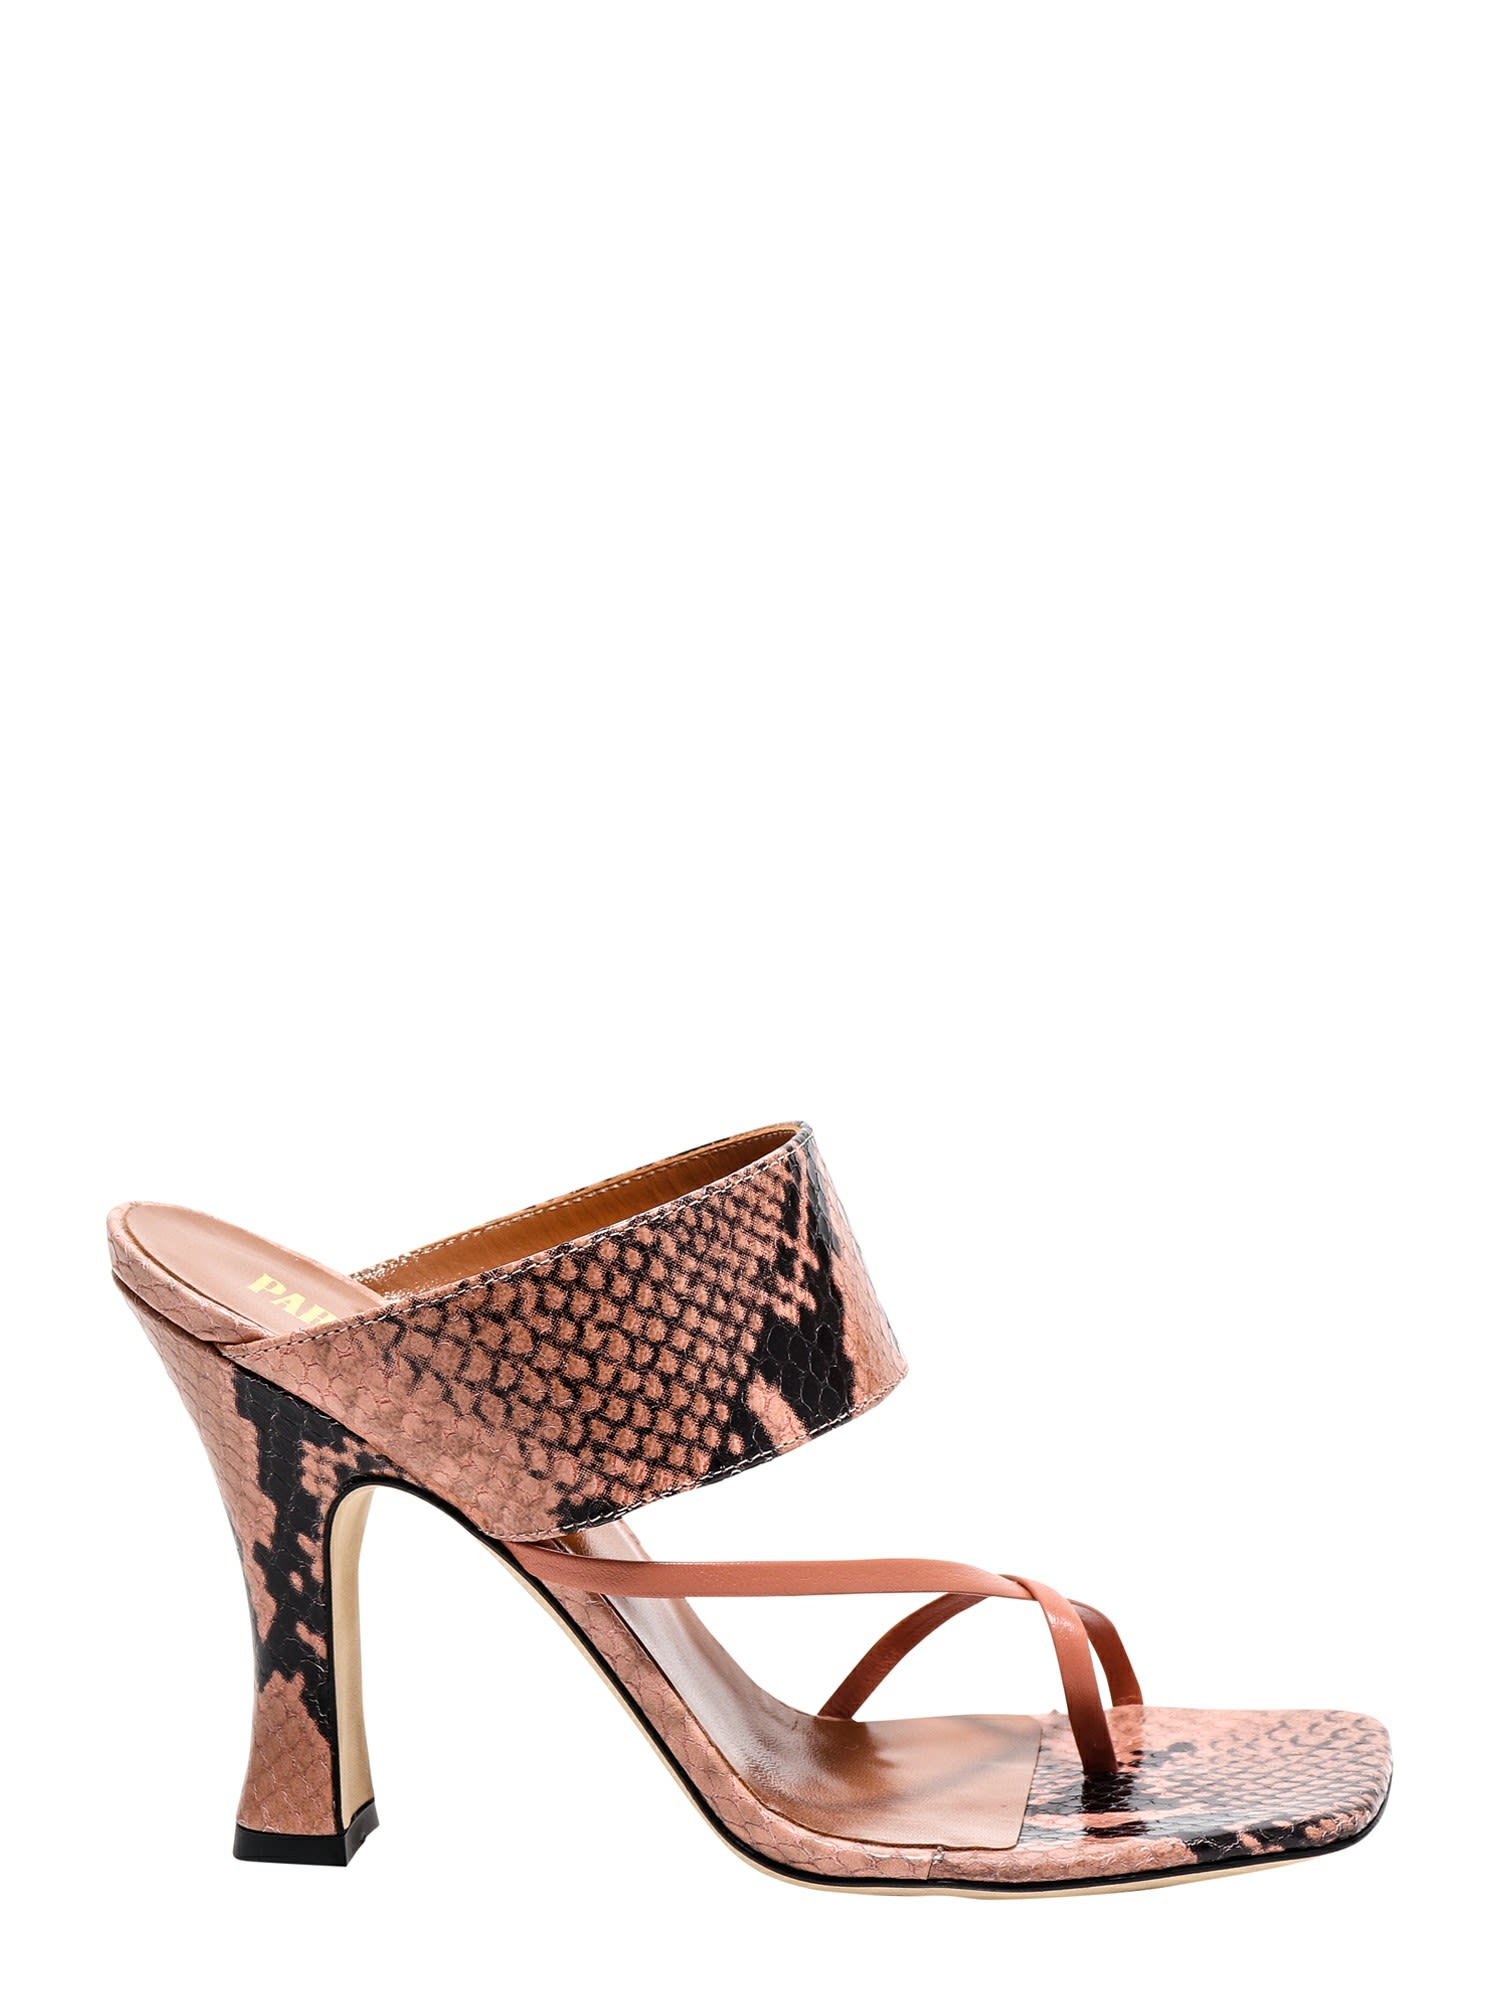 Paris Texas Sandals